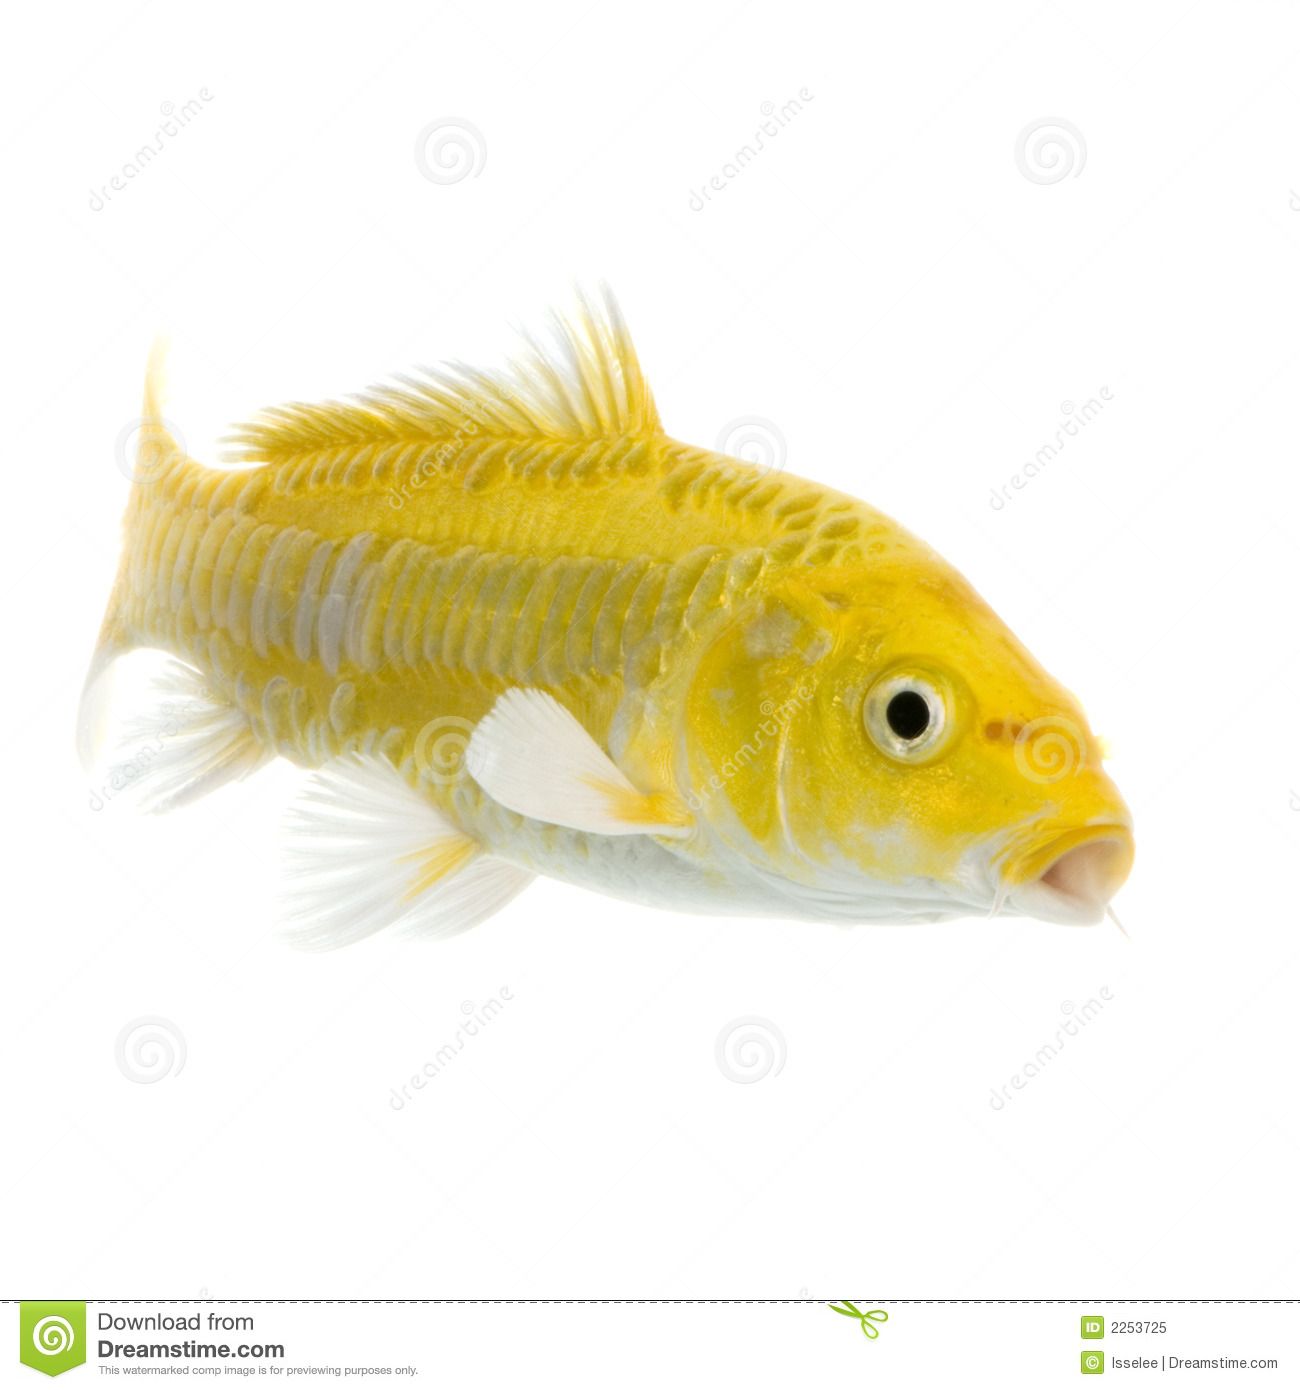 Koi yamabuki ogon stock image image of yamabuki swim for Ogon koi fish